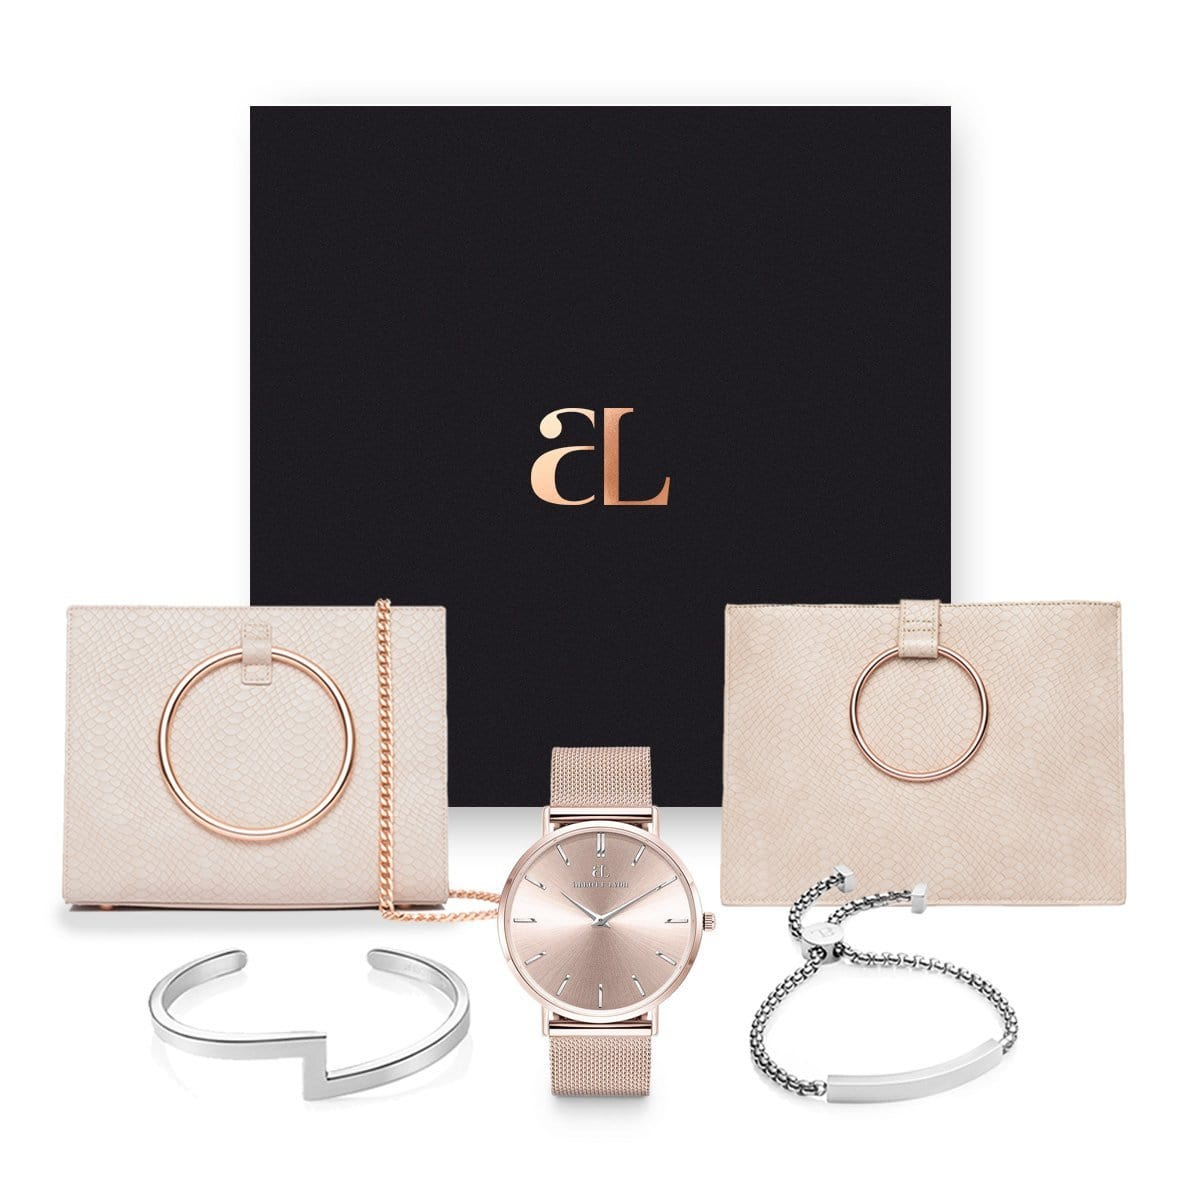 Blush Lover's Set (PERSONALISIER MICH)